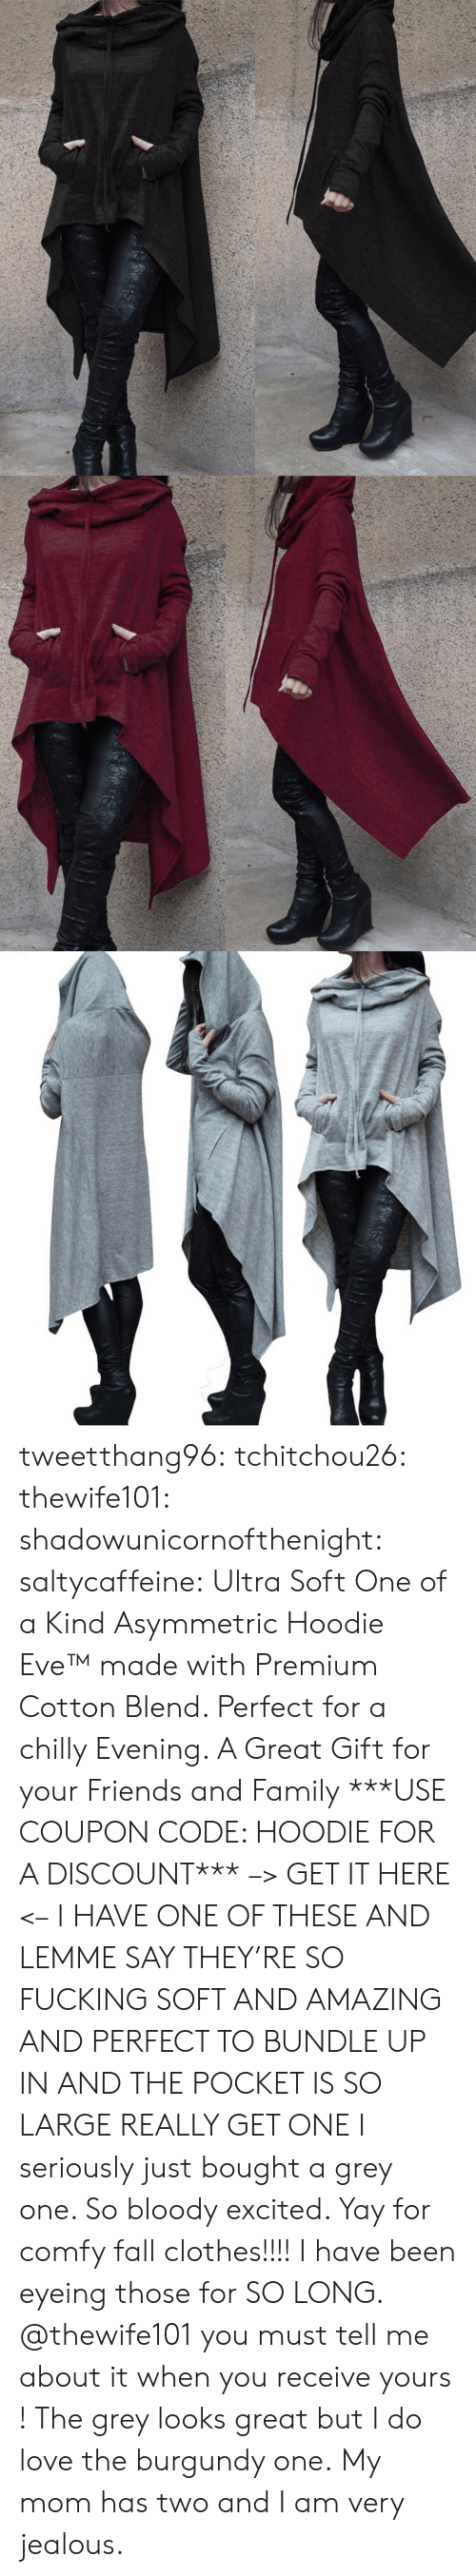 Clothes, Fall, and Family: tweetthang96:  tchitchou26: thewife101:  shadowunicornofthenight:  saltycaffeine:  Ultra Soft One of a Kind Asymmetric Hoodie Eve™made with Premium Cotton Blend. Perfect for a chilly Evening. A Great Gift for your Friends and Family ***USE COUPON CODE: HOODIE FOR A DISCOUNT*** –> GET IT HERE <–   I HAVE ONE OF THESE AND LEMME SAY THEY'RE SO FUCKING SOFT AND AMAZING AND PERFECT TO BUNDLE UP IN AND THE POCKET IS SO LARGE REALLY GET ONE   I seriously just bought a grey one. So bloody excited. Yay for comfy fall clothes!!!!   I have been eyeing those for SO LONG. @thewife101 you must tell me about it when you receive yours ! The grey looks great but I do love the burgundy one.   My mom has two and I am very jealous.